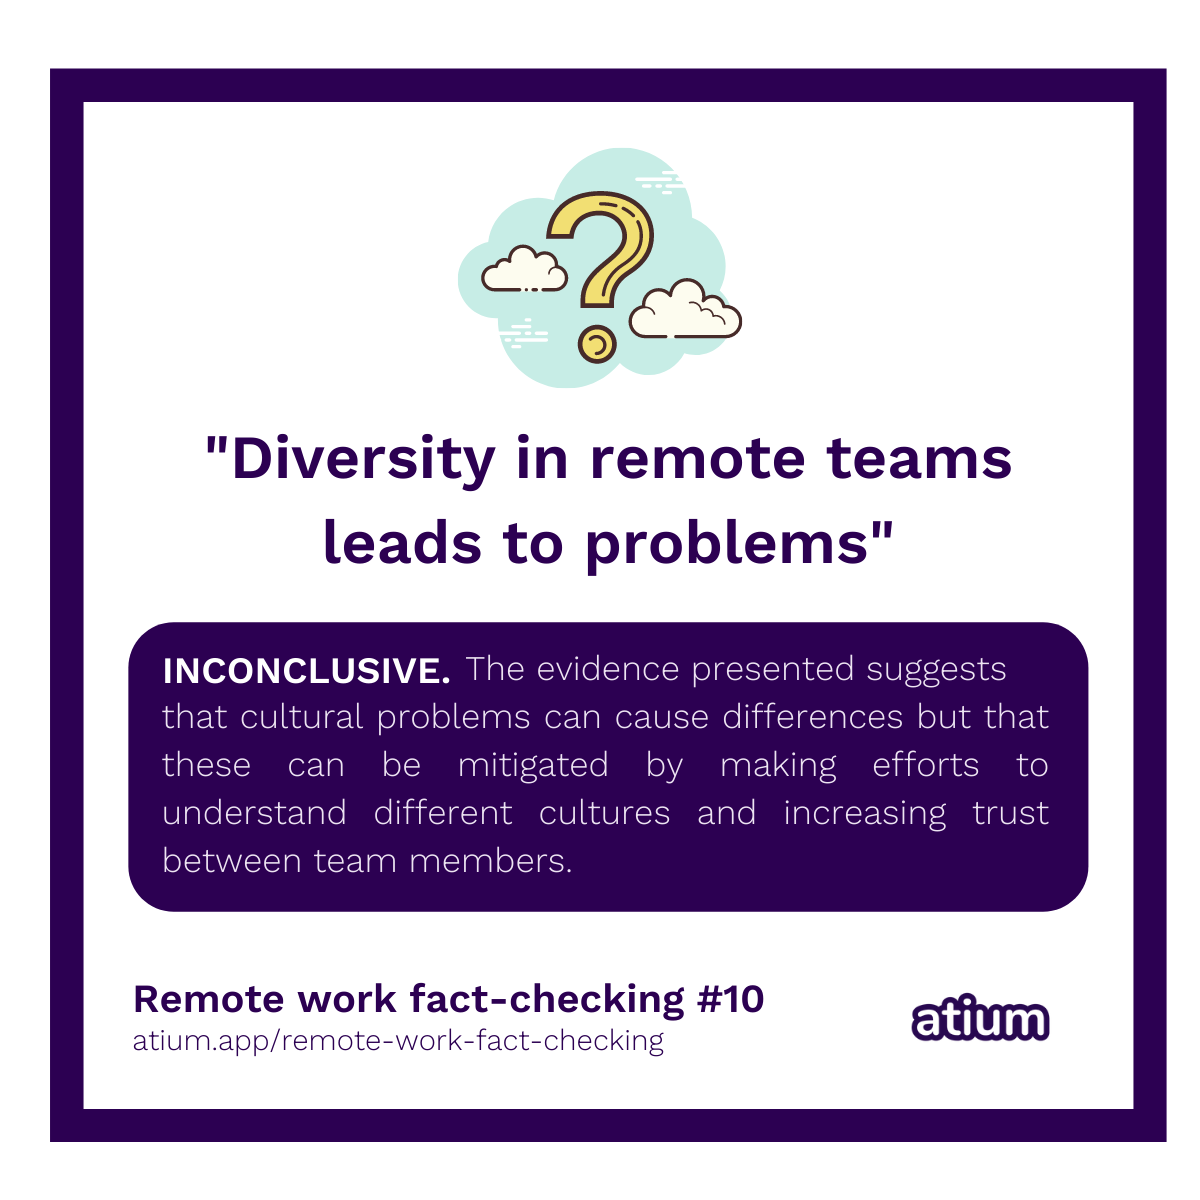 Diversity in remote teams leads to problems